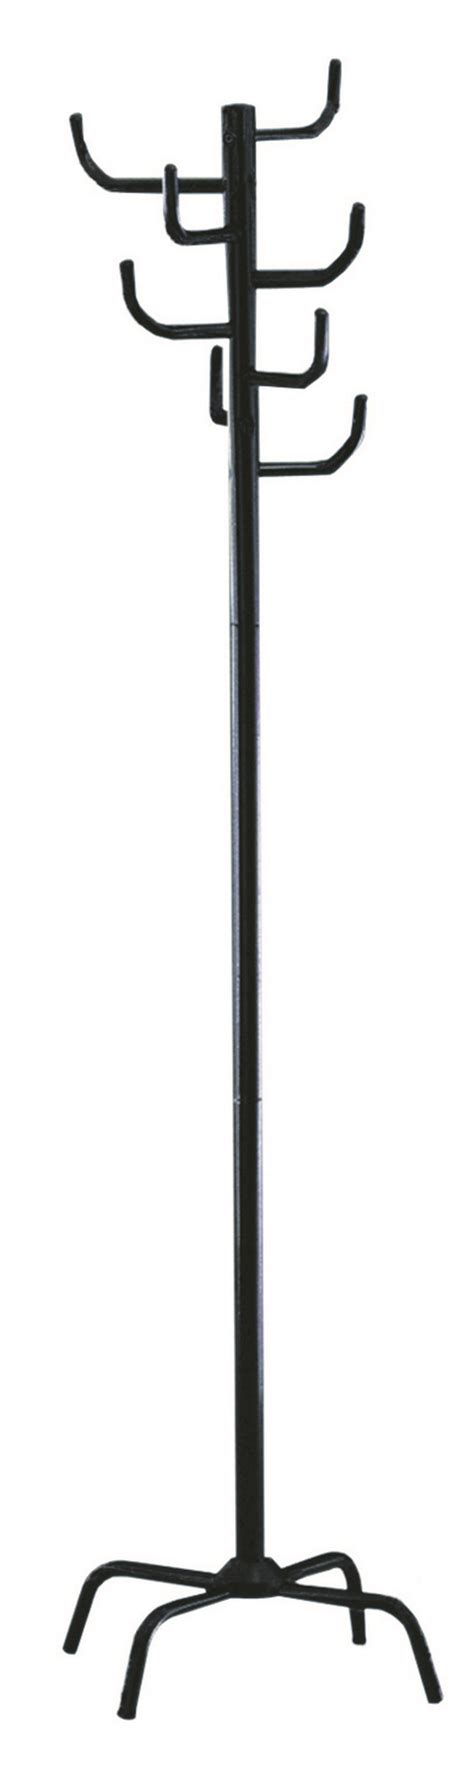 43100 by Cactus Coat Stand Black 43100